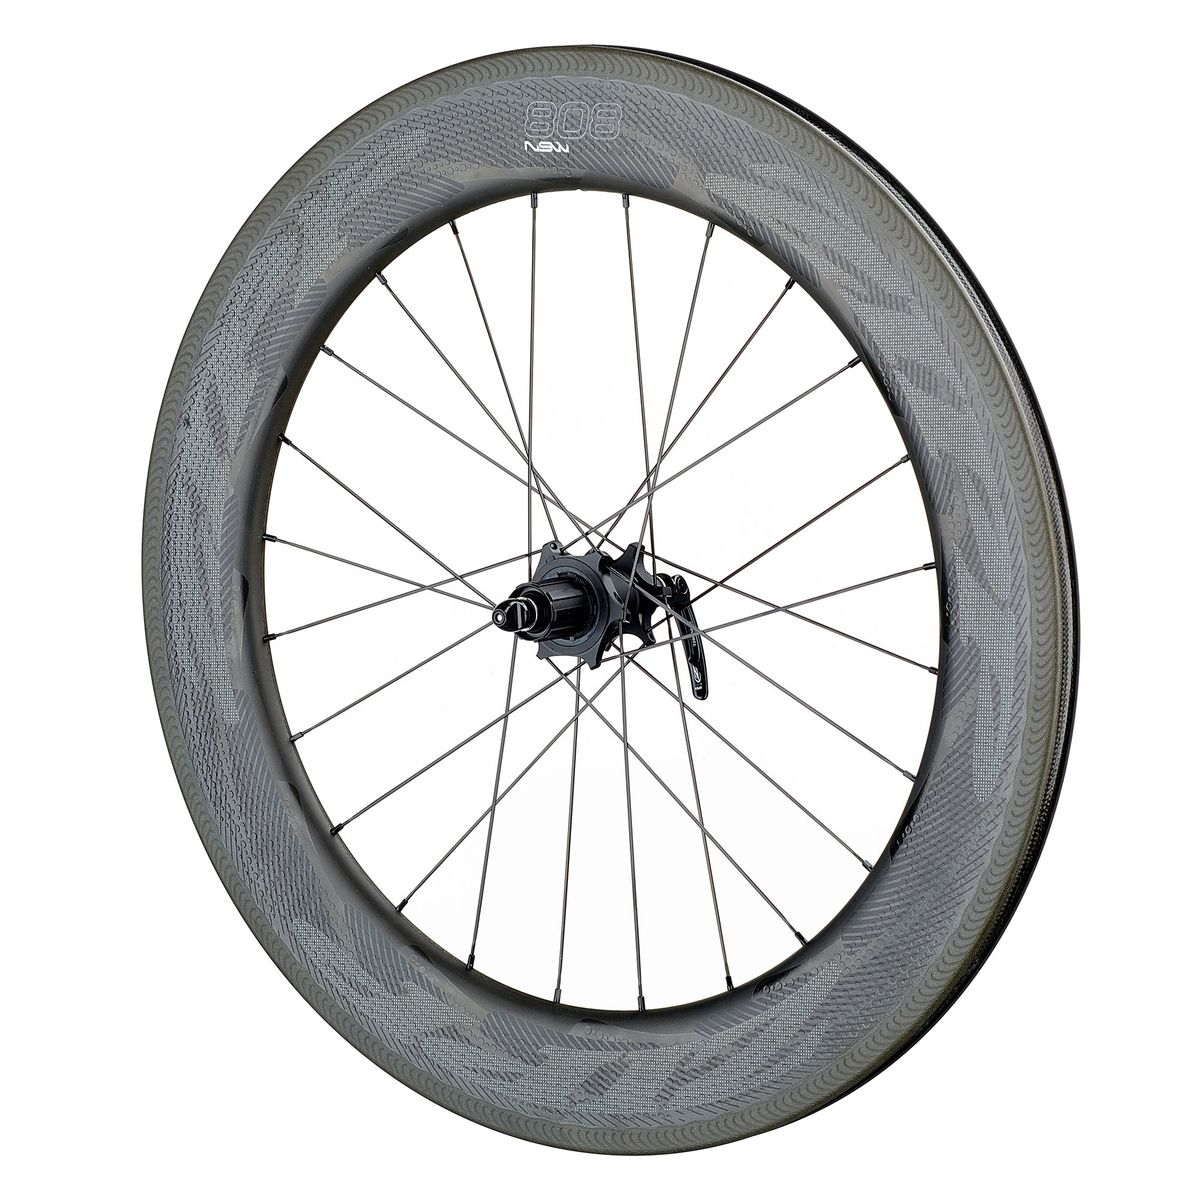 808 NSW Carbon Clincher 28